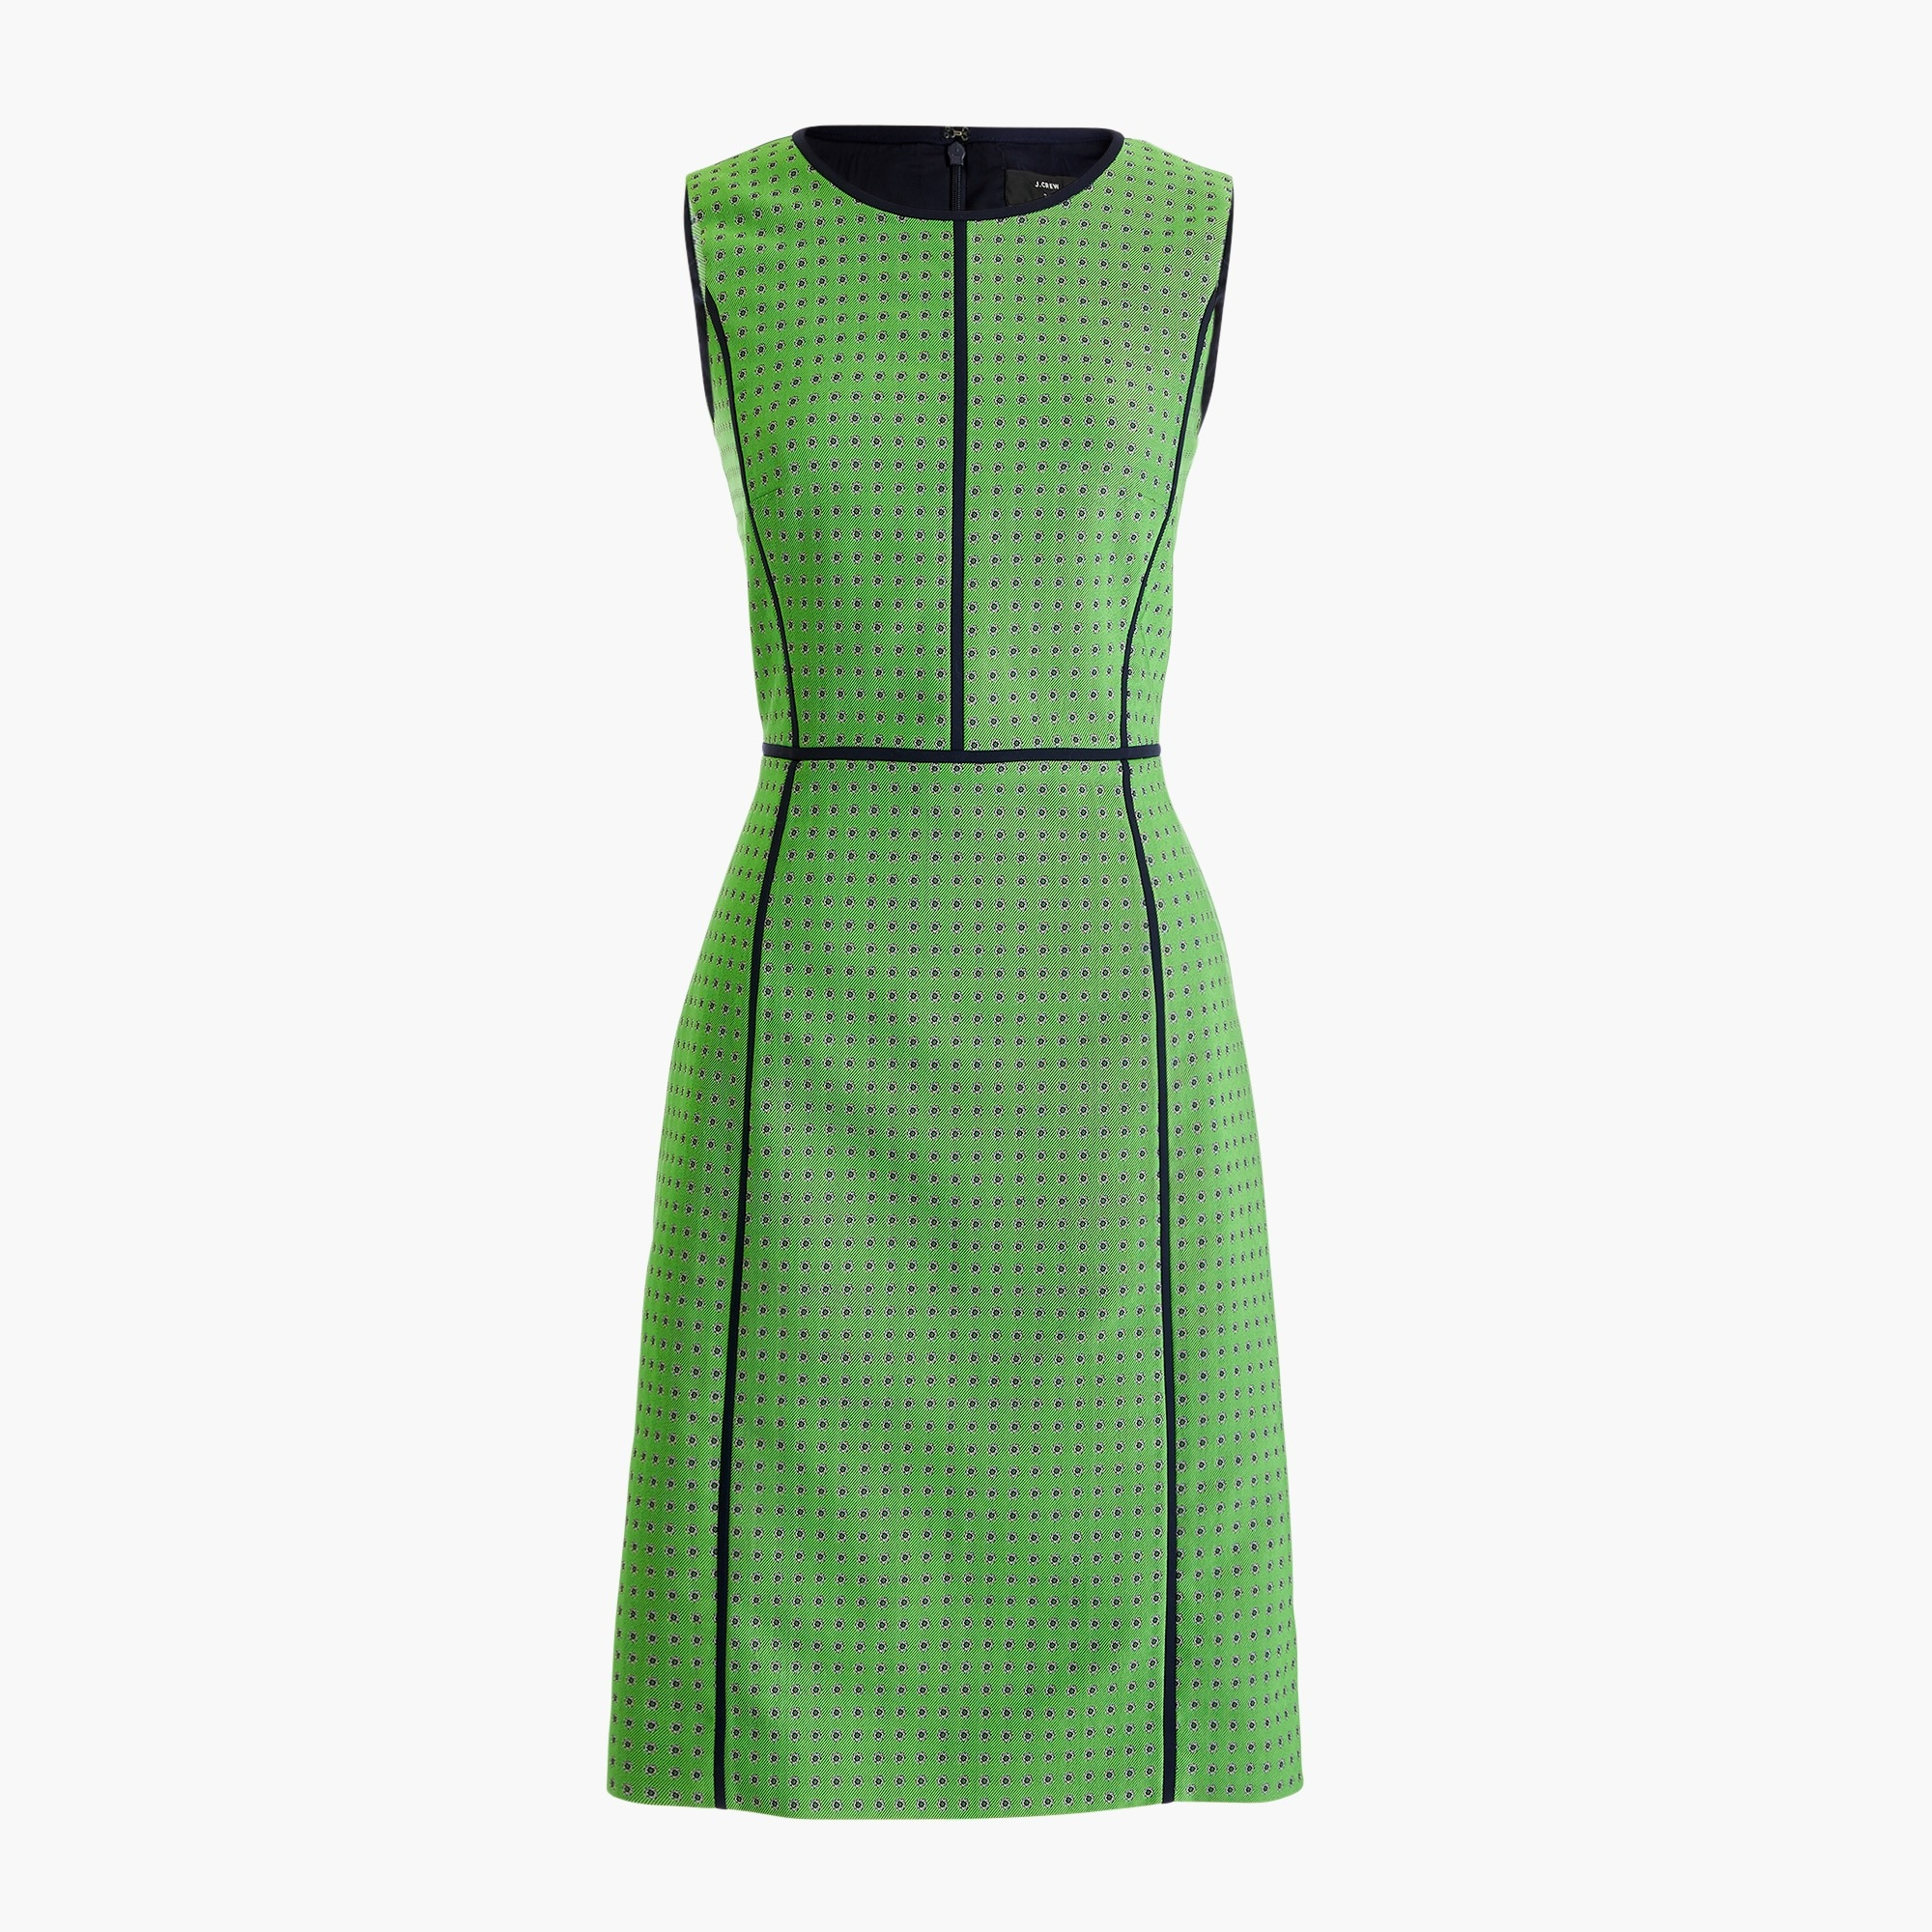 Image 6 for Petite paneled sheath dress